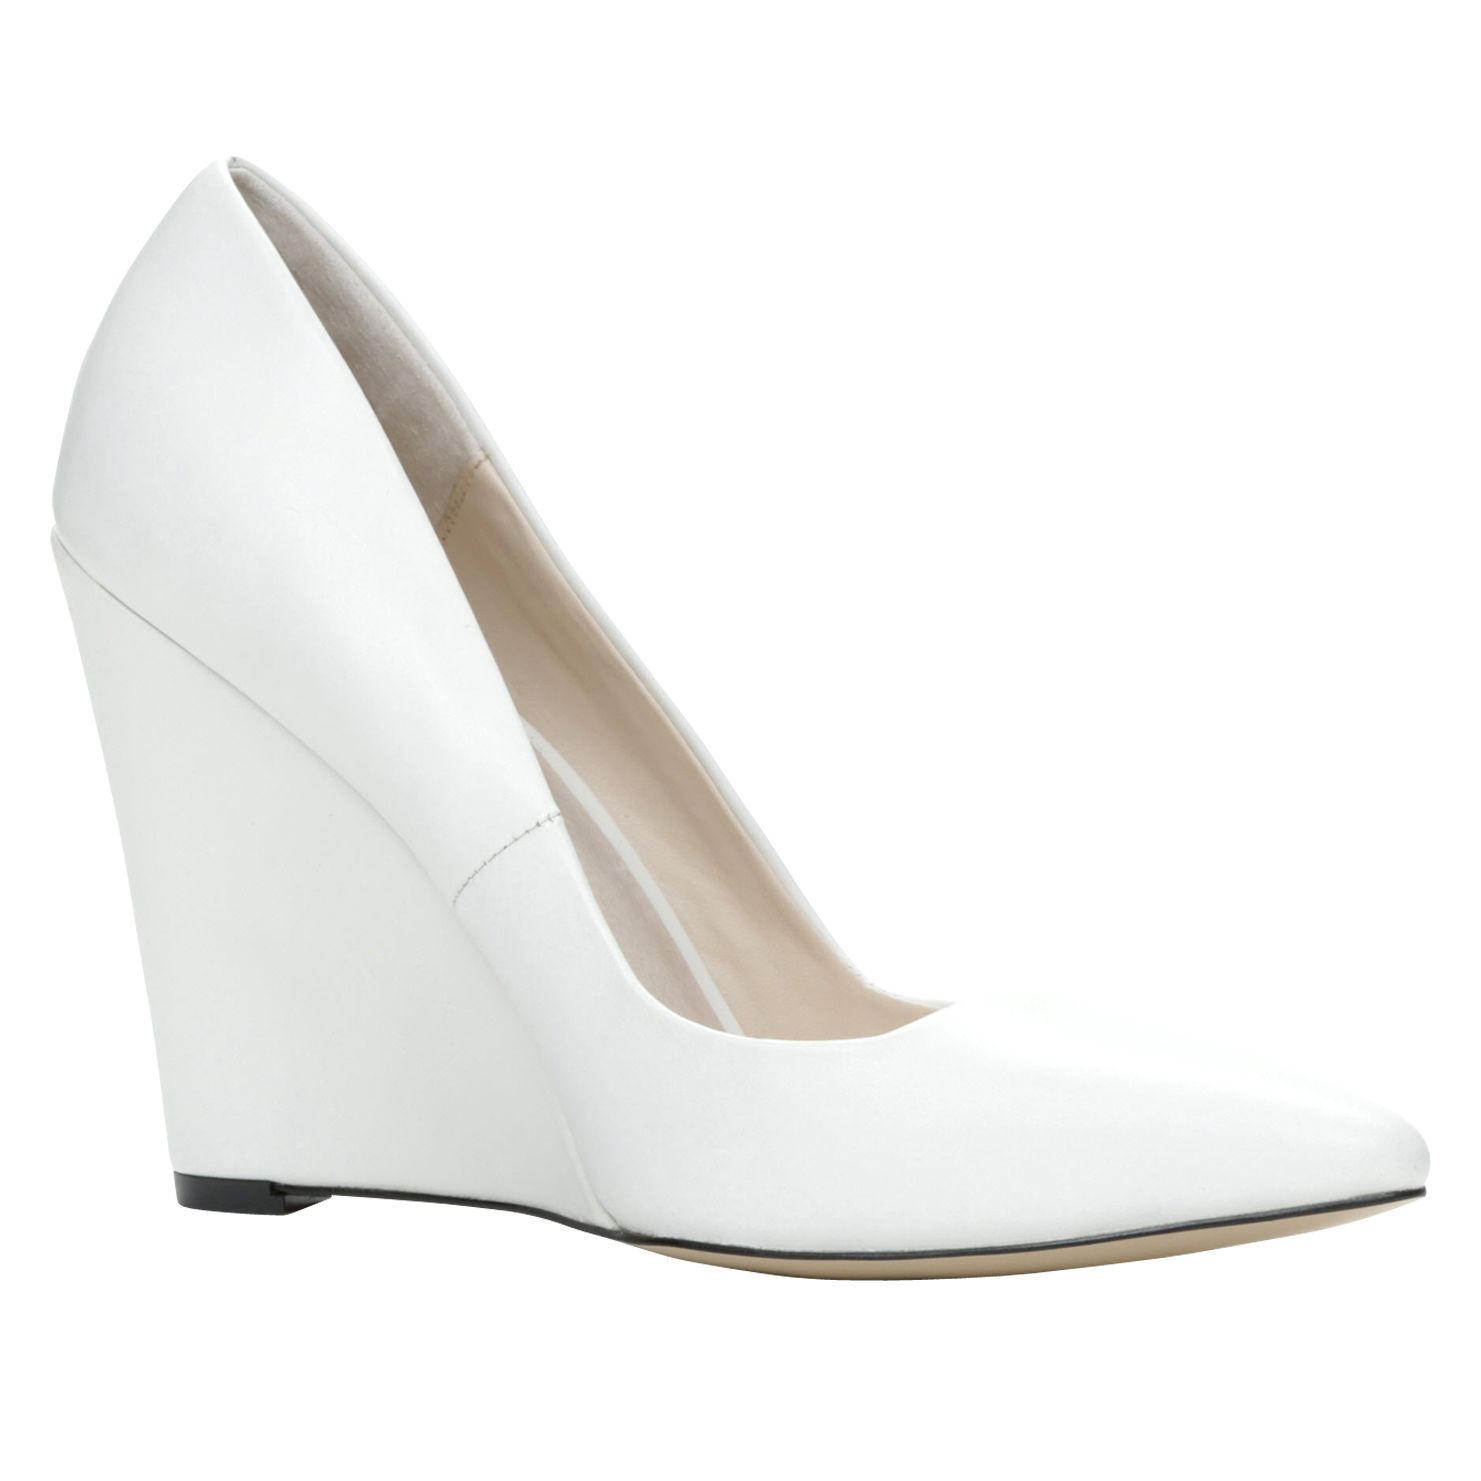 aldo cirrito pointed toe wedge court shoes in white lyst